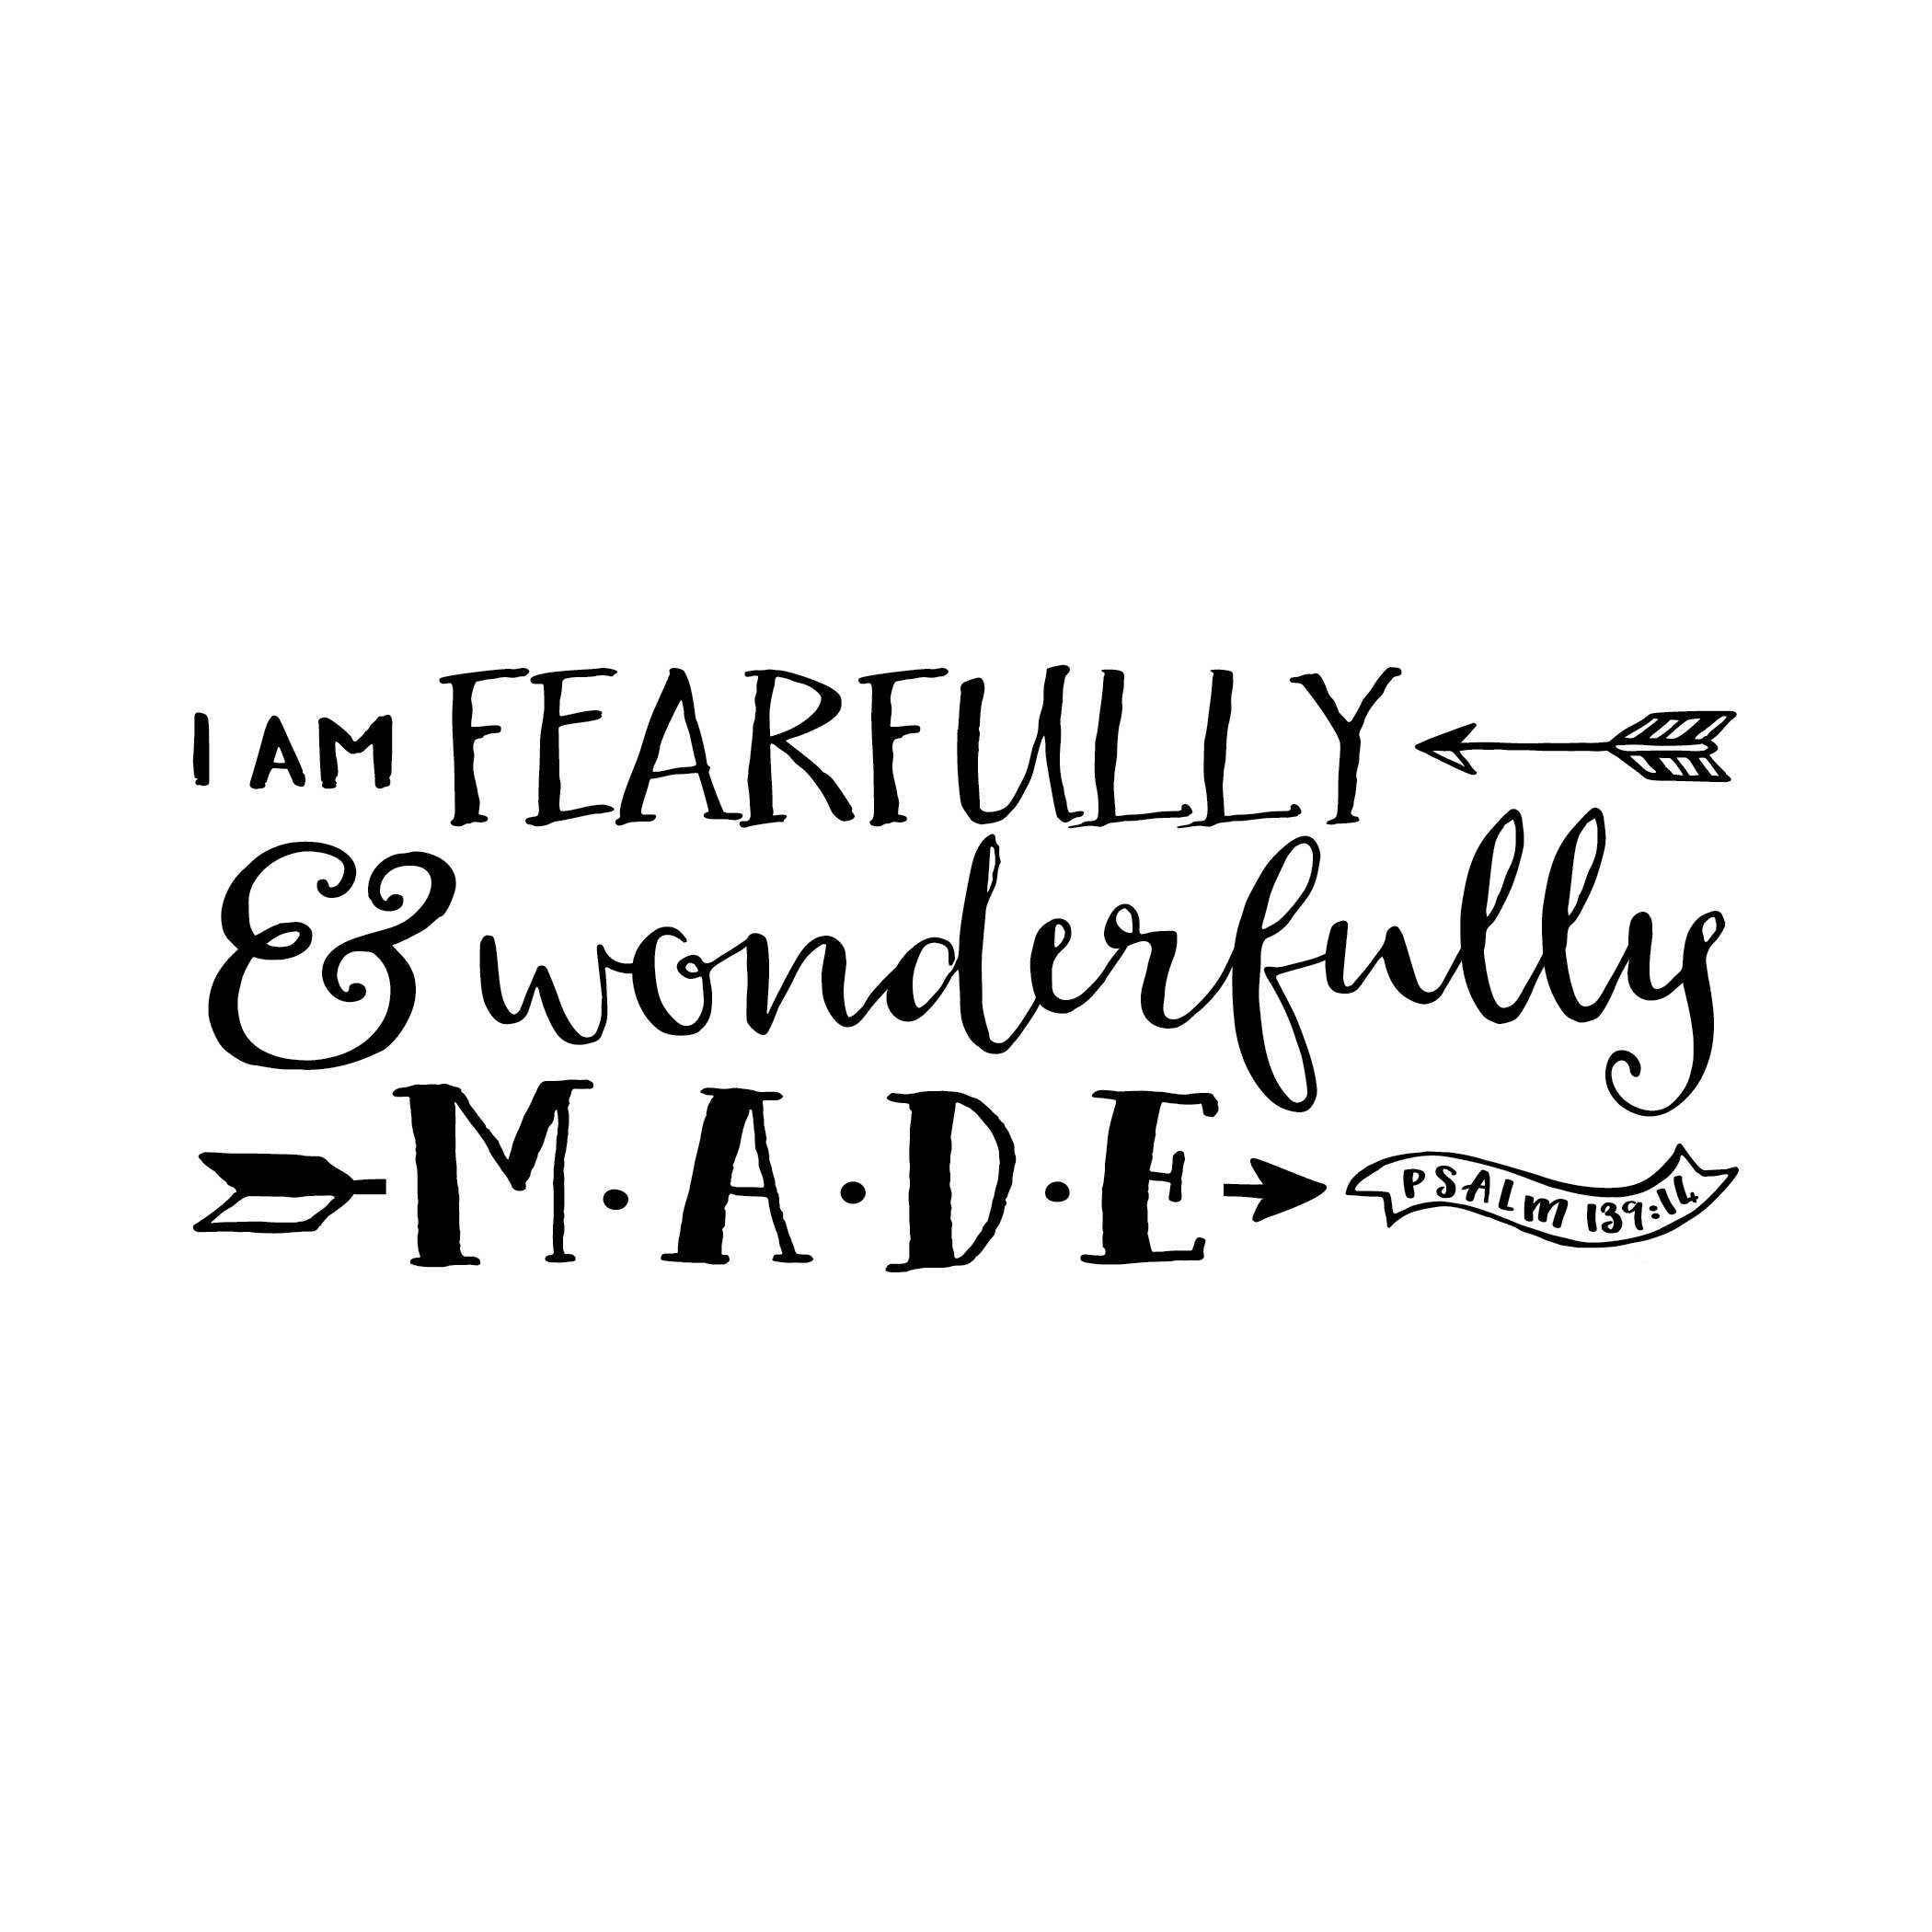 Psalm 139v14 Vinyl Wall Decal 27 I am Fearfully and